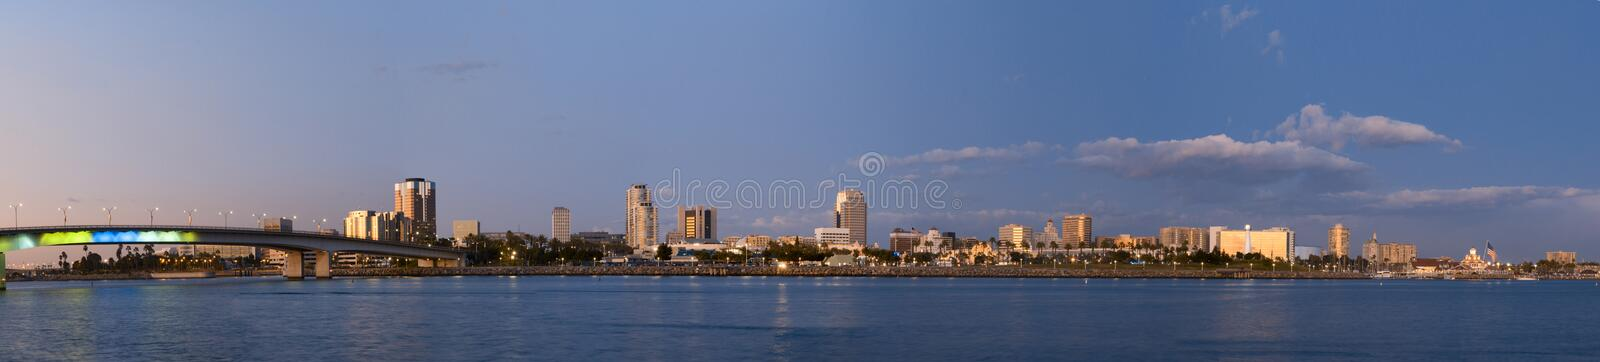 Long Beach skyline stock photography